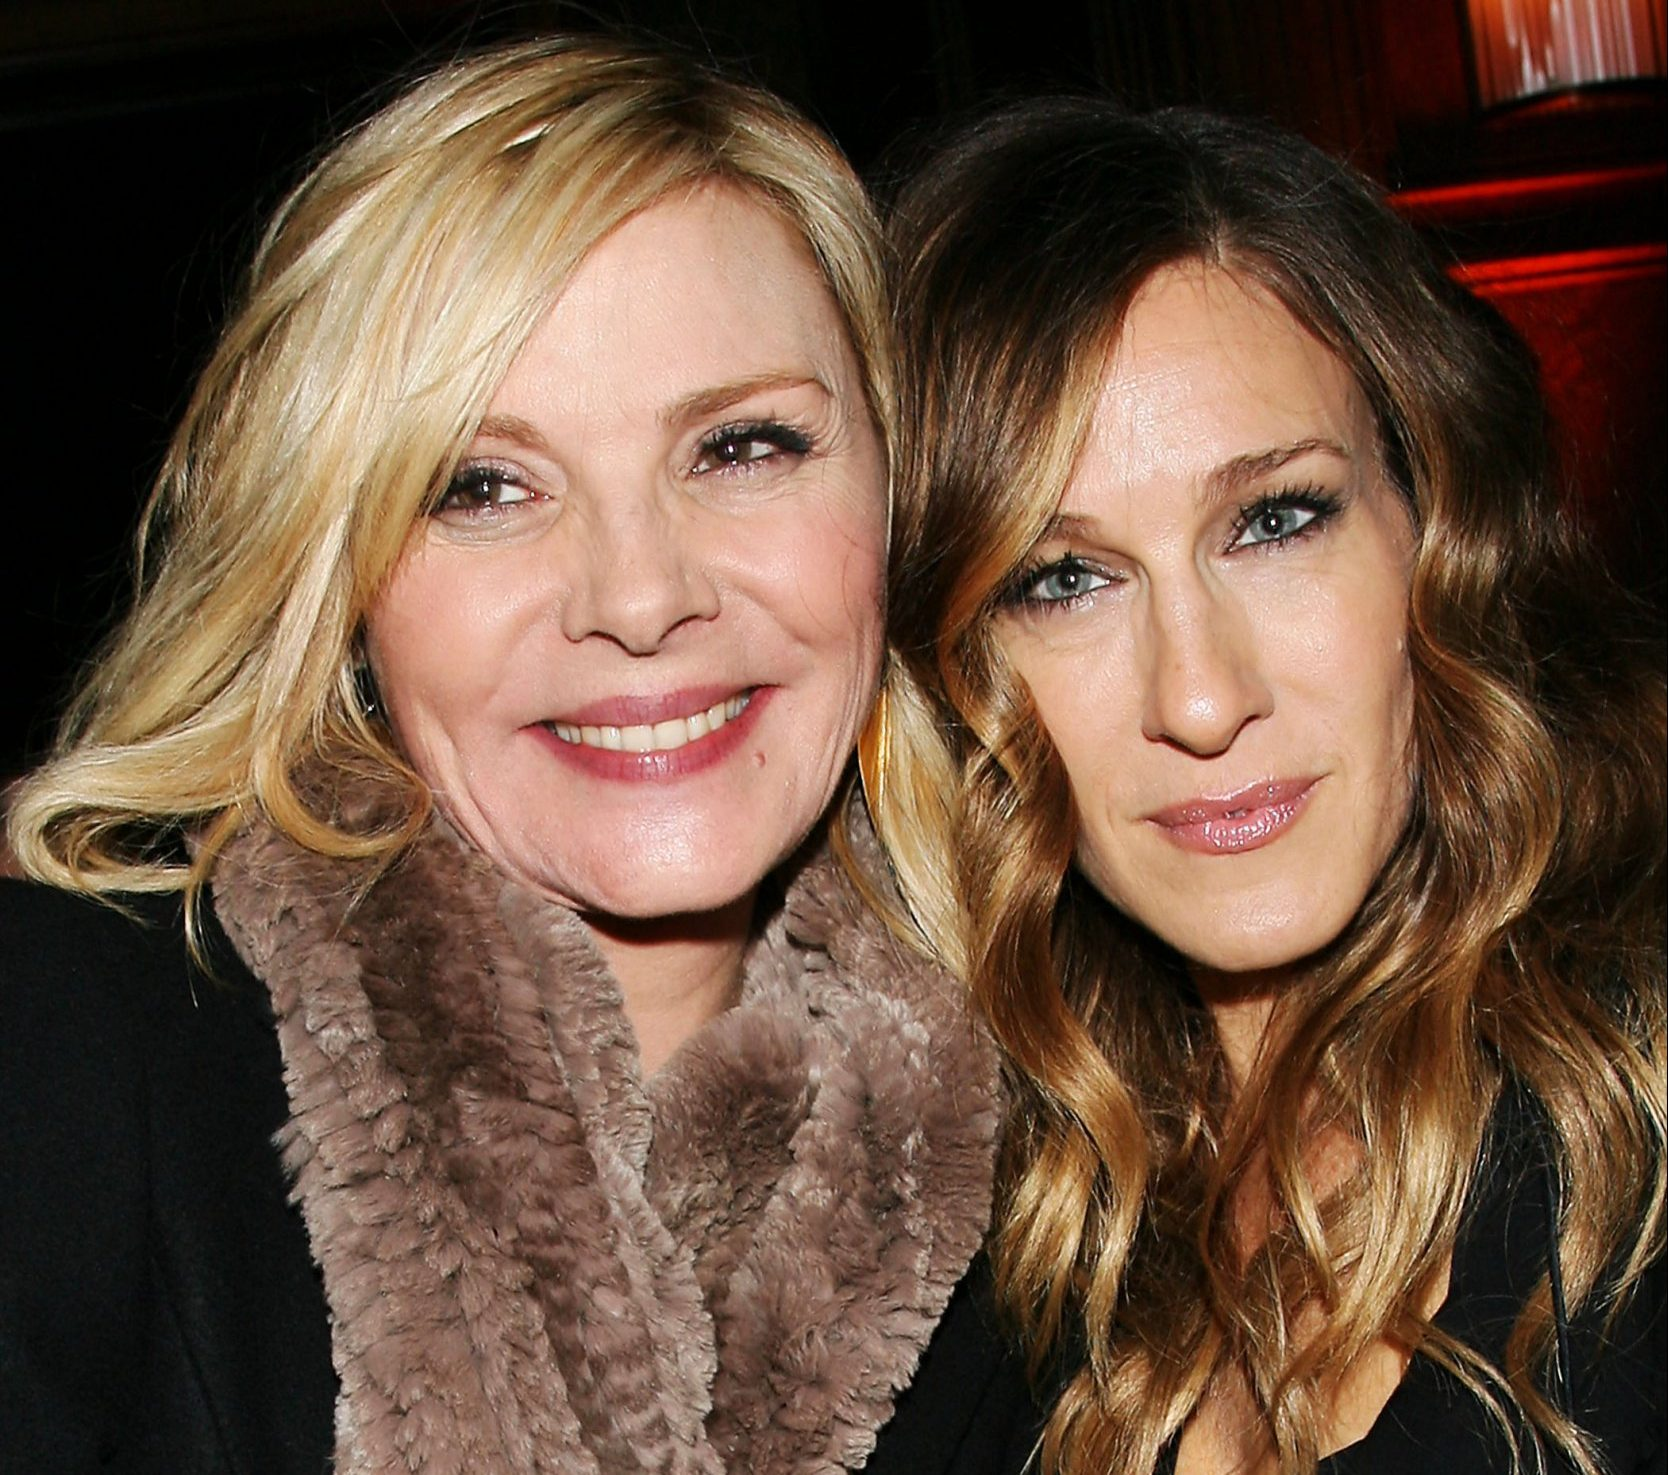 Mandatory Credit: Photo by Dave Allocca/StarPix/REX/Shutterstock (5632704f) Kim Cattrall and Sarah Jessica Parker 'Did You Hear About the Morgans?' film premiere, Ziegfeld Theatre, New York, America - 14 Dec 2009